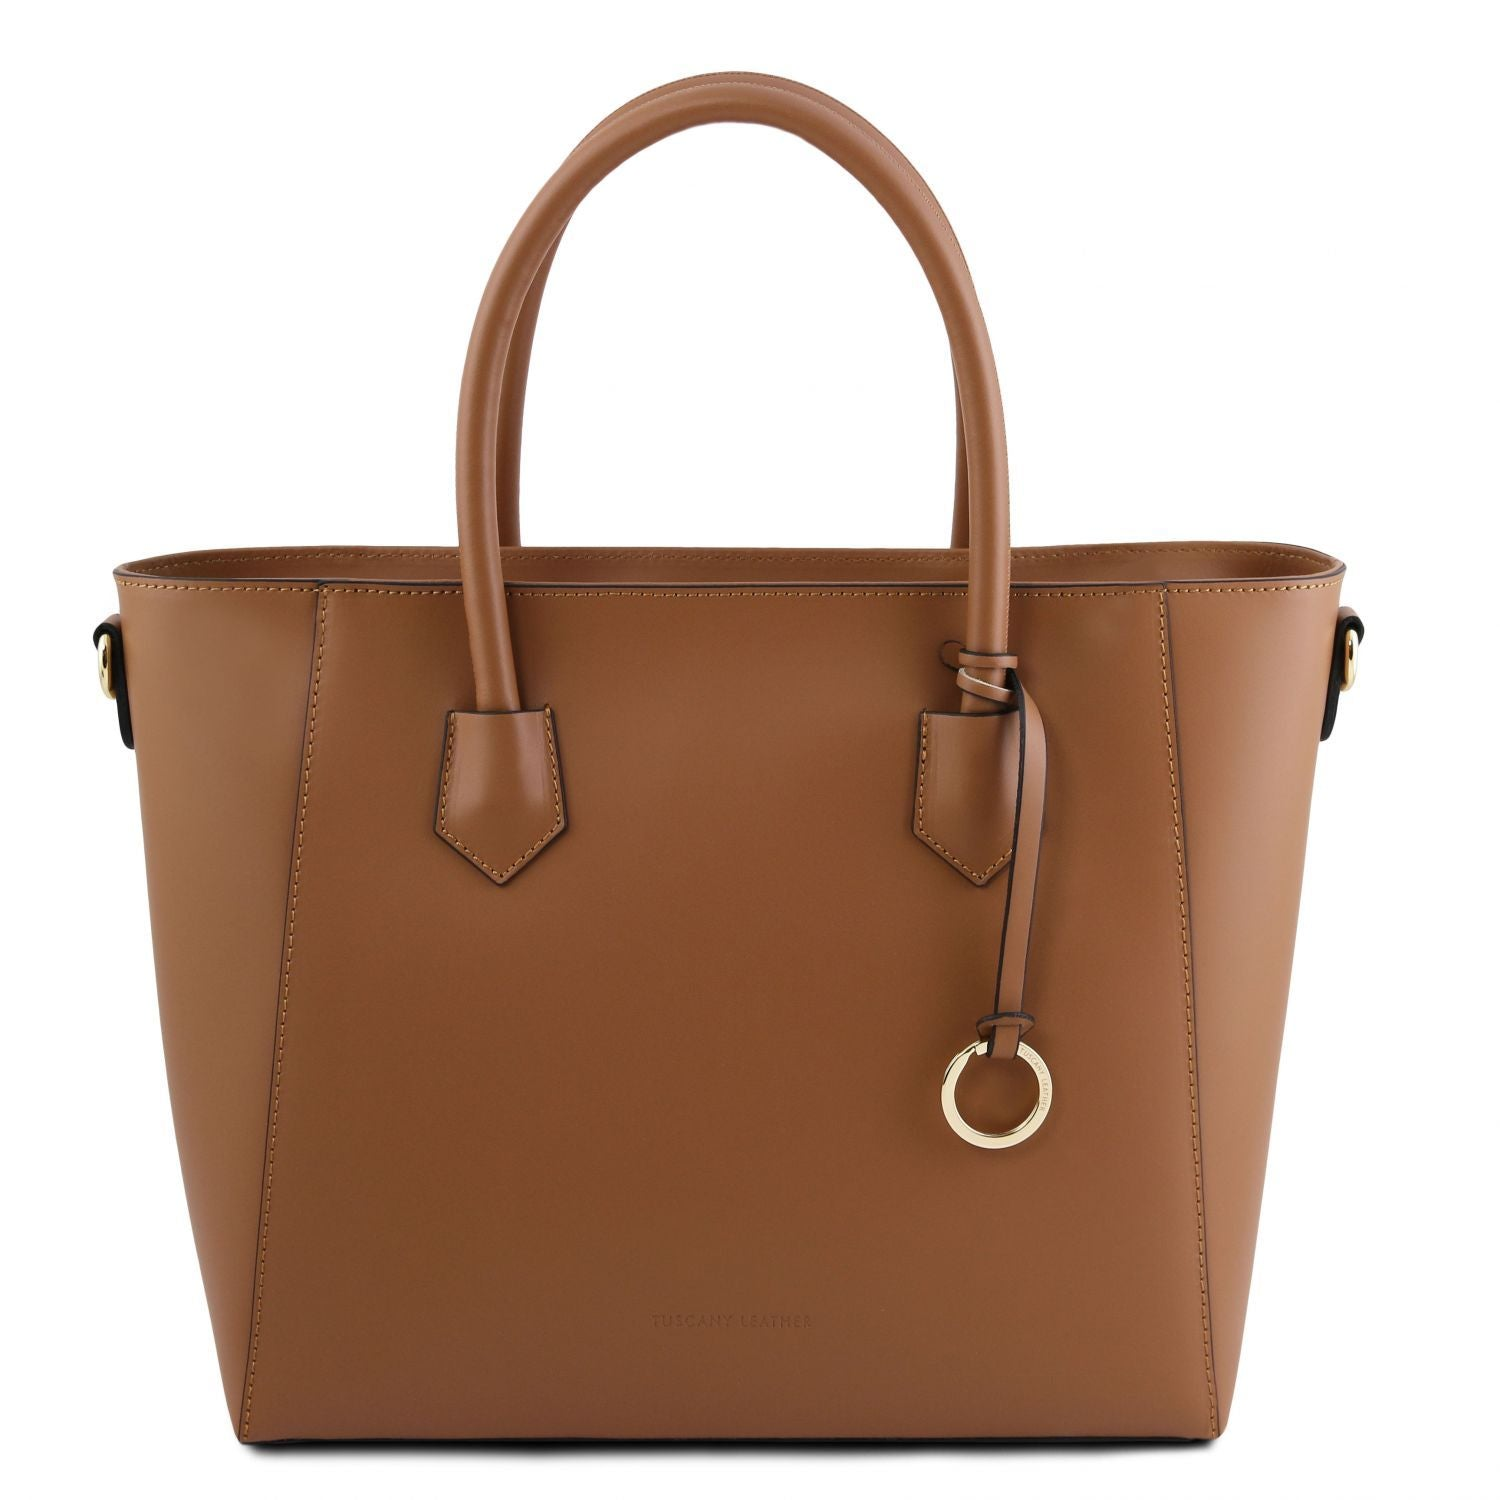 Aria - Leather tote (TL141823) - Leather handbags | DILUSSOBAGS